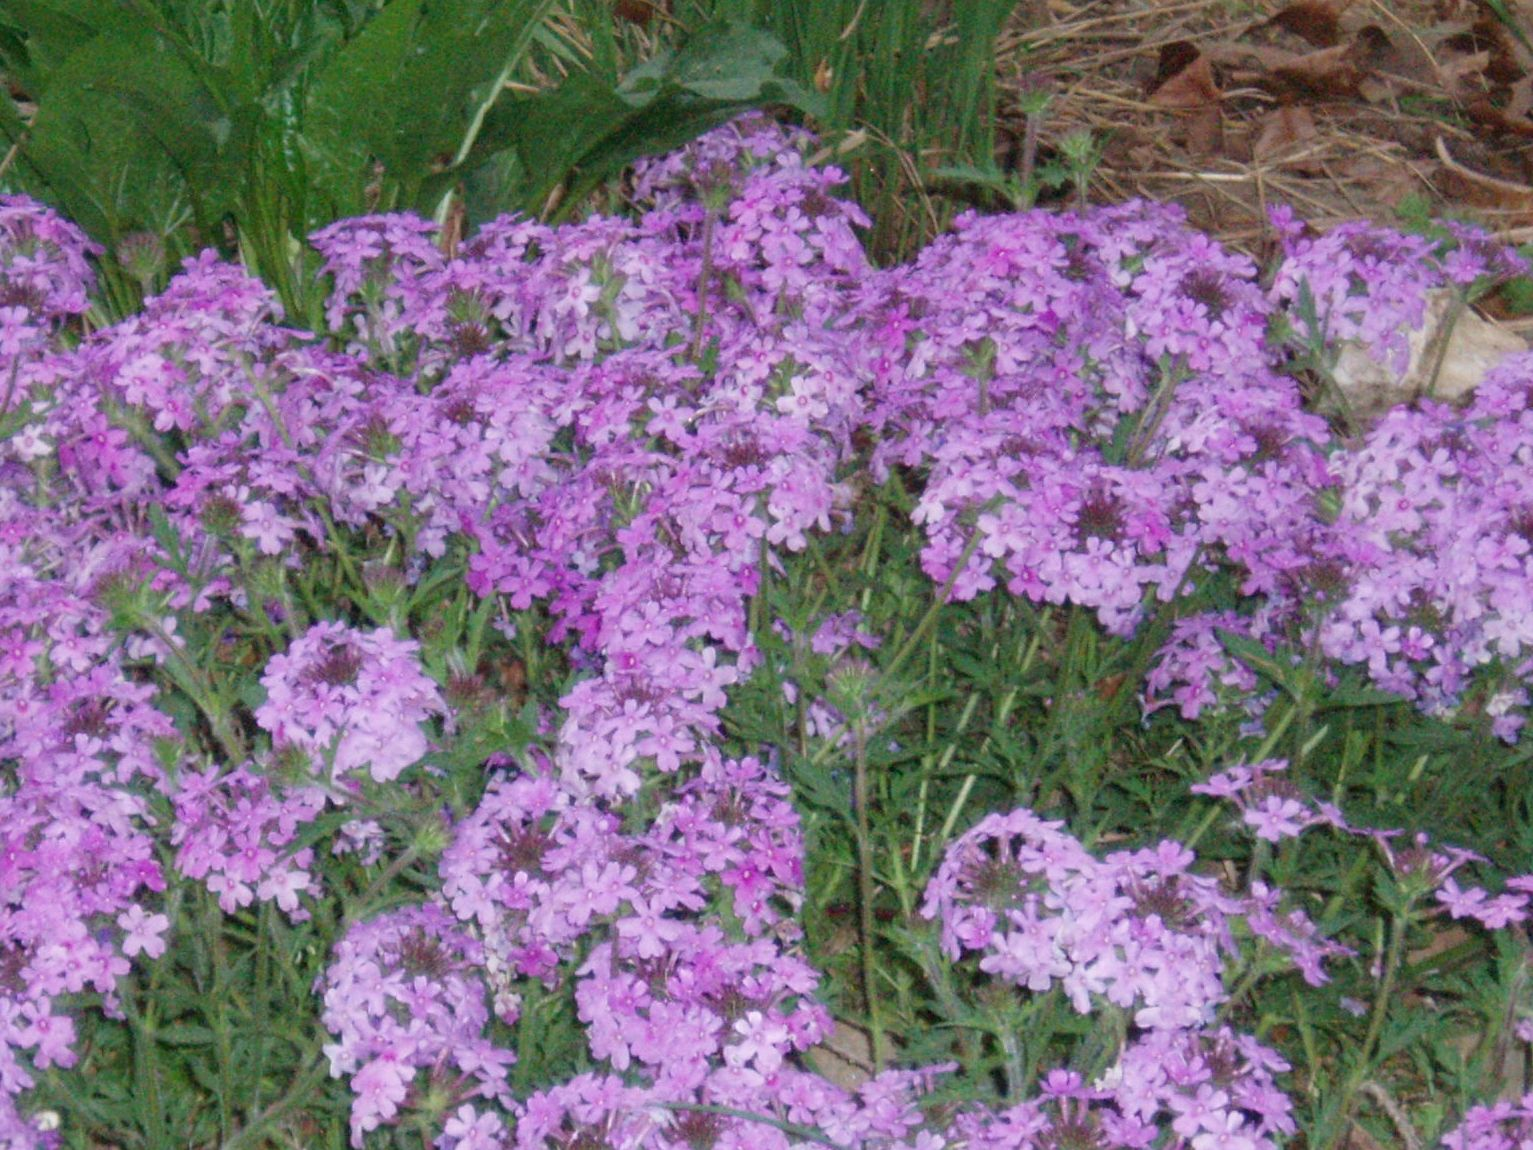 "{""blocks"":[{""key"":""5alu0"",""text"":""Glandularia canaden Verbena canadensis Rose Vervain - potted plants email john@easywildflowers.com"",""type"":""unstyled"",""depth"":0,""inlineStyleRanges"":[],""entityRanges"":[],""data"":{}}],""entityMap"":{}}"